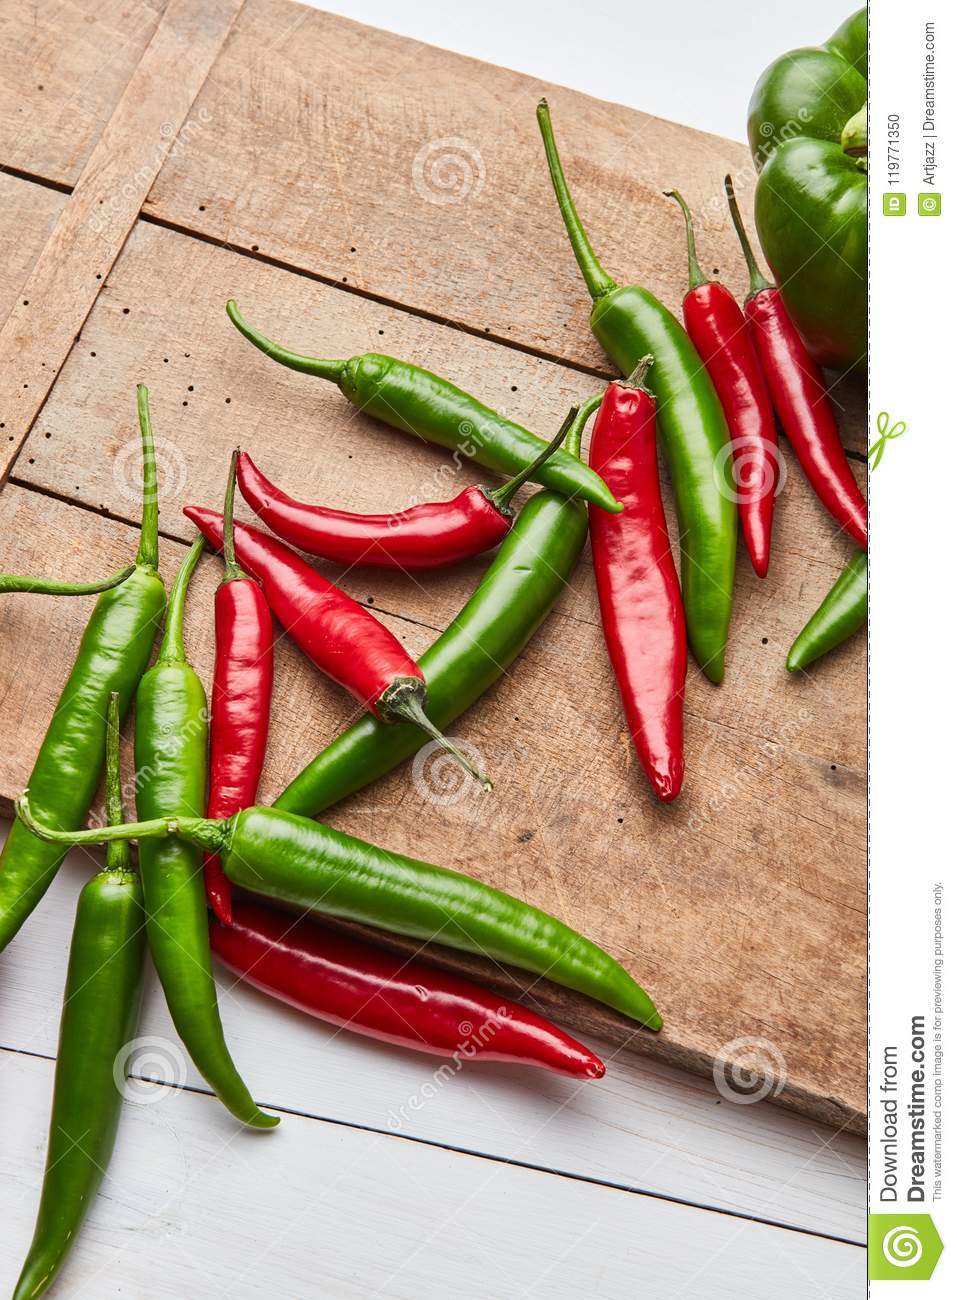 Chili colored peppers for cooking sauce on an old wooden board